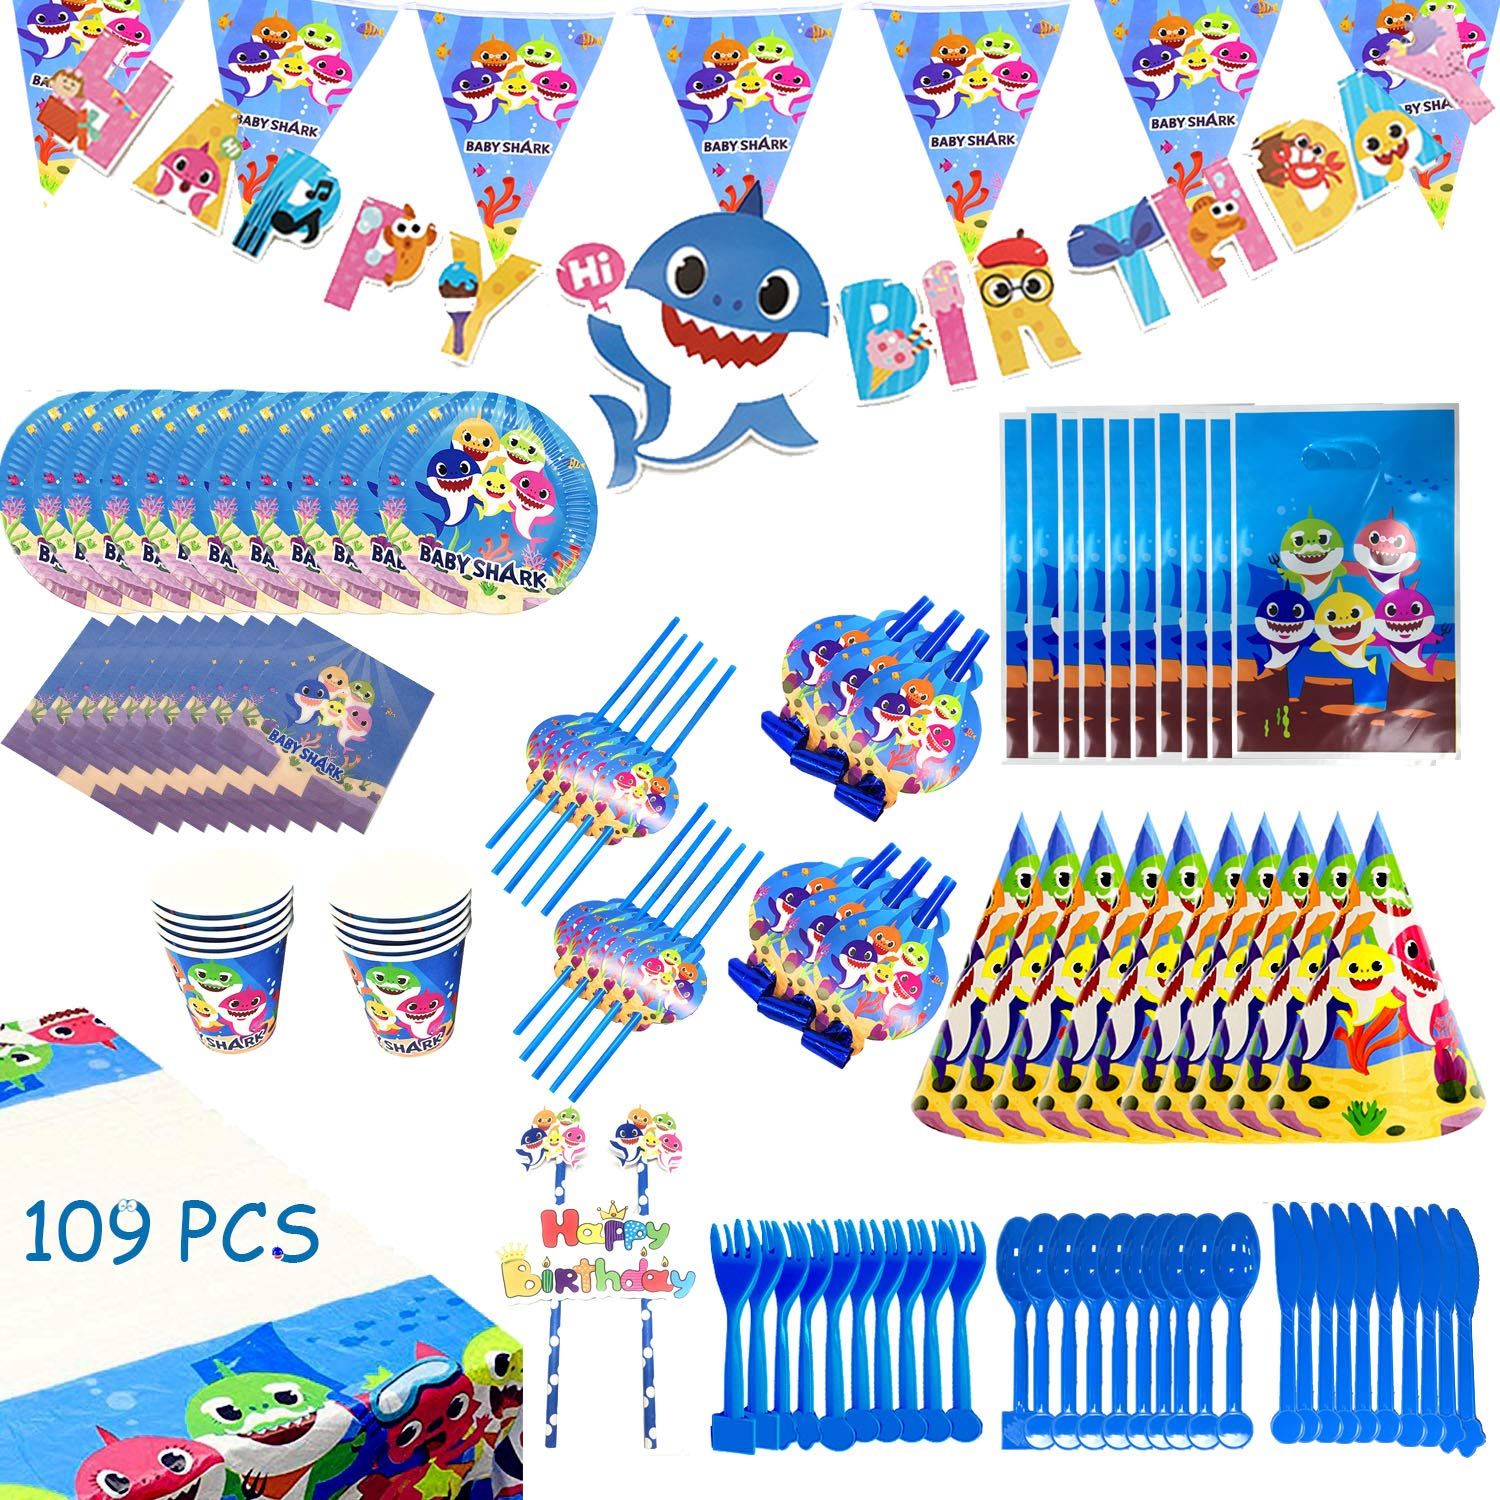 Baby Shark Party Supplies Set - 109 Pcs Baby Shark Themed Birthday Decorations Includes Disposable Tableware Kit Blowing Dragon Paper Hat Gift Bag and Banner - Serves 10 Guest